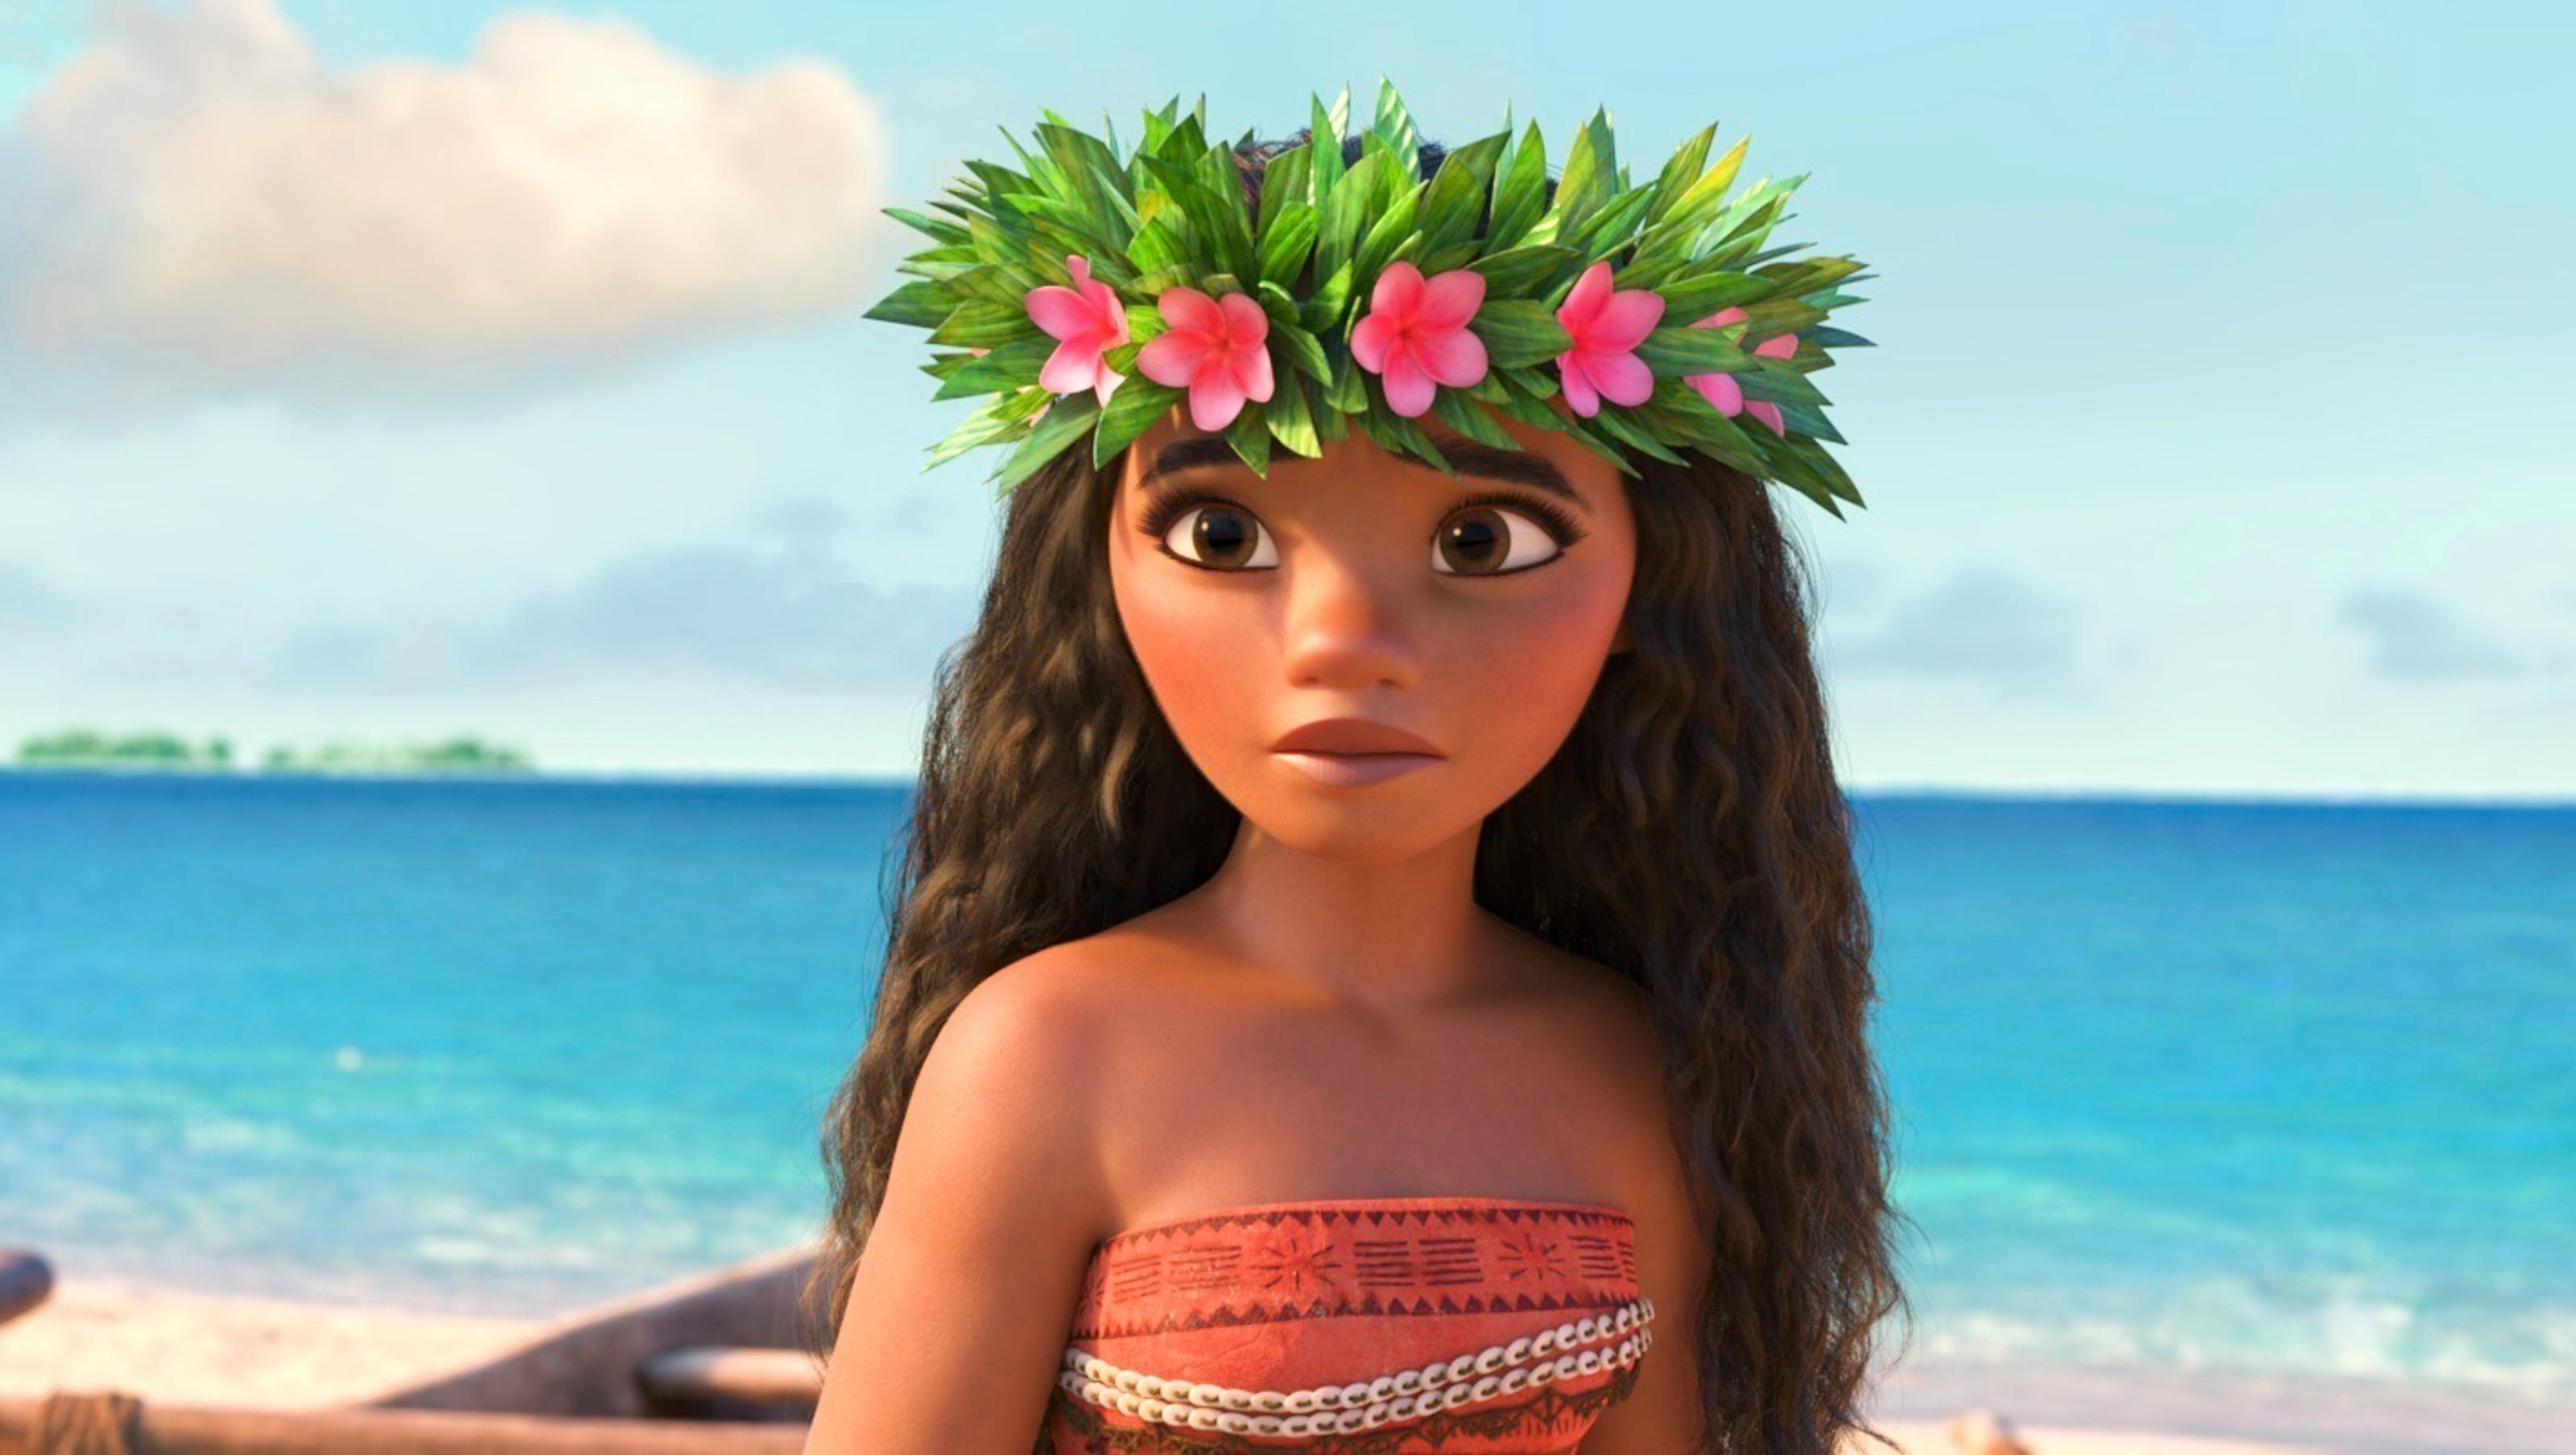 Is It Ok For A White Kid To Dress Up As Moana For Halloween And Other Cultural Appropriation Questions